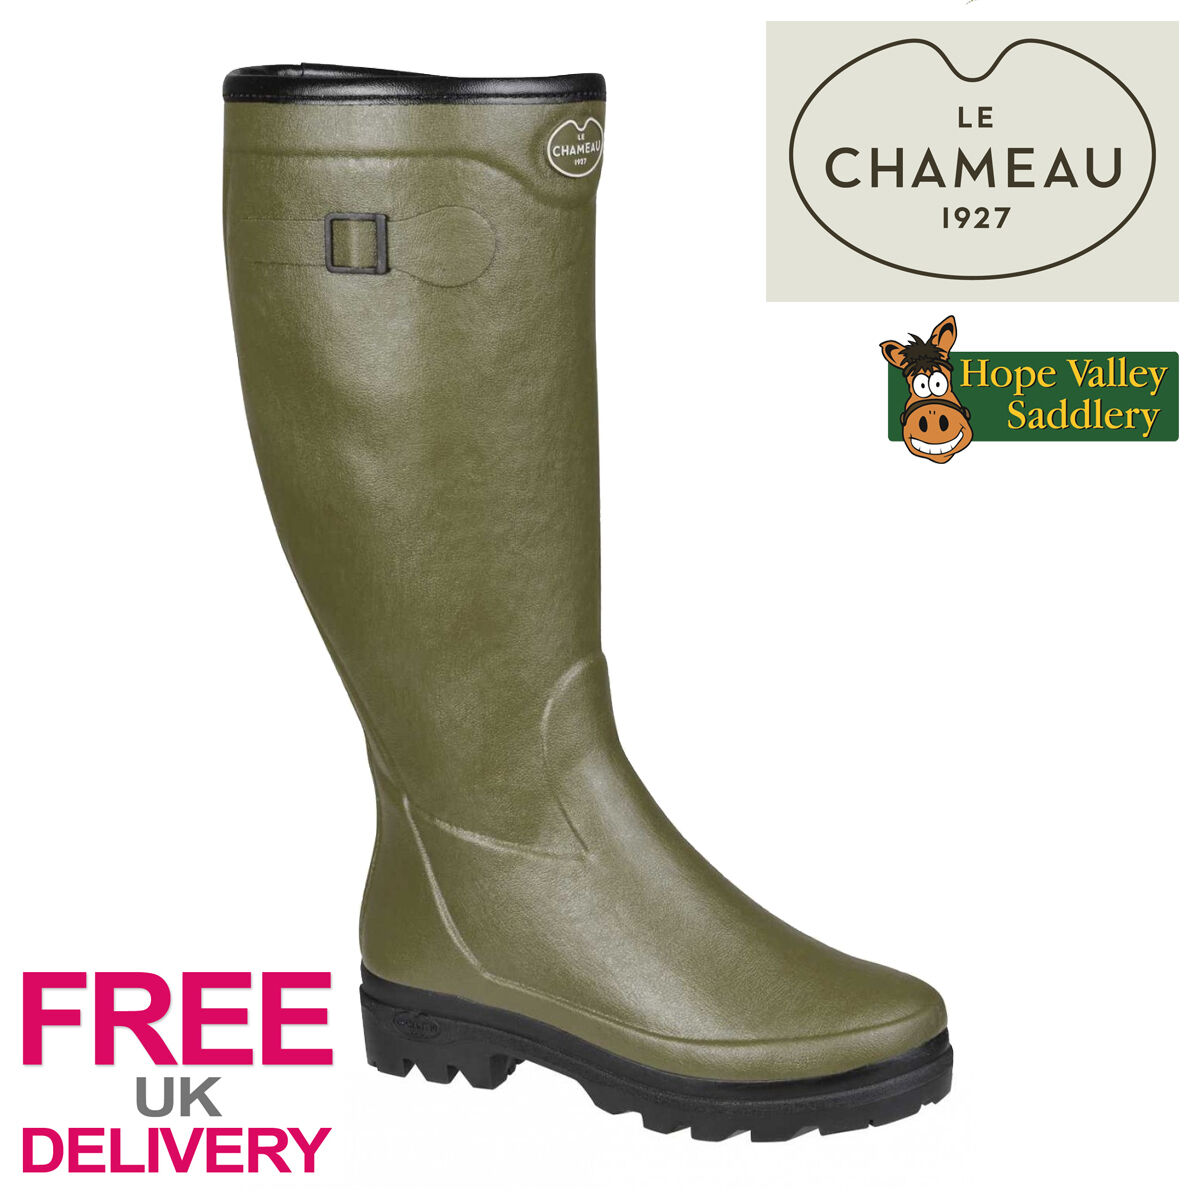 Le Chameau País Lady FOUREE Wellies (entrega UK LIBRE)